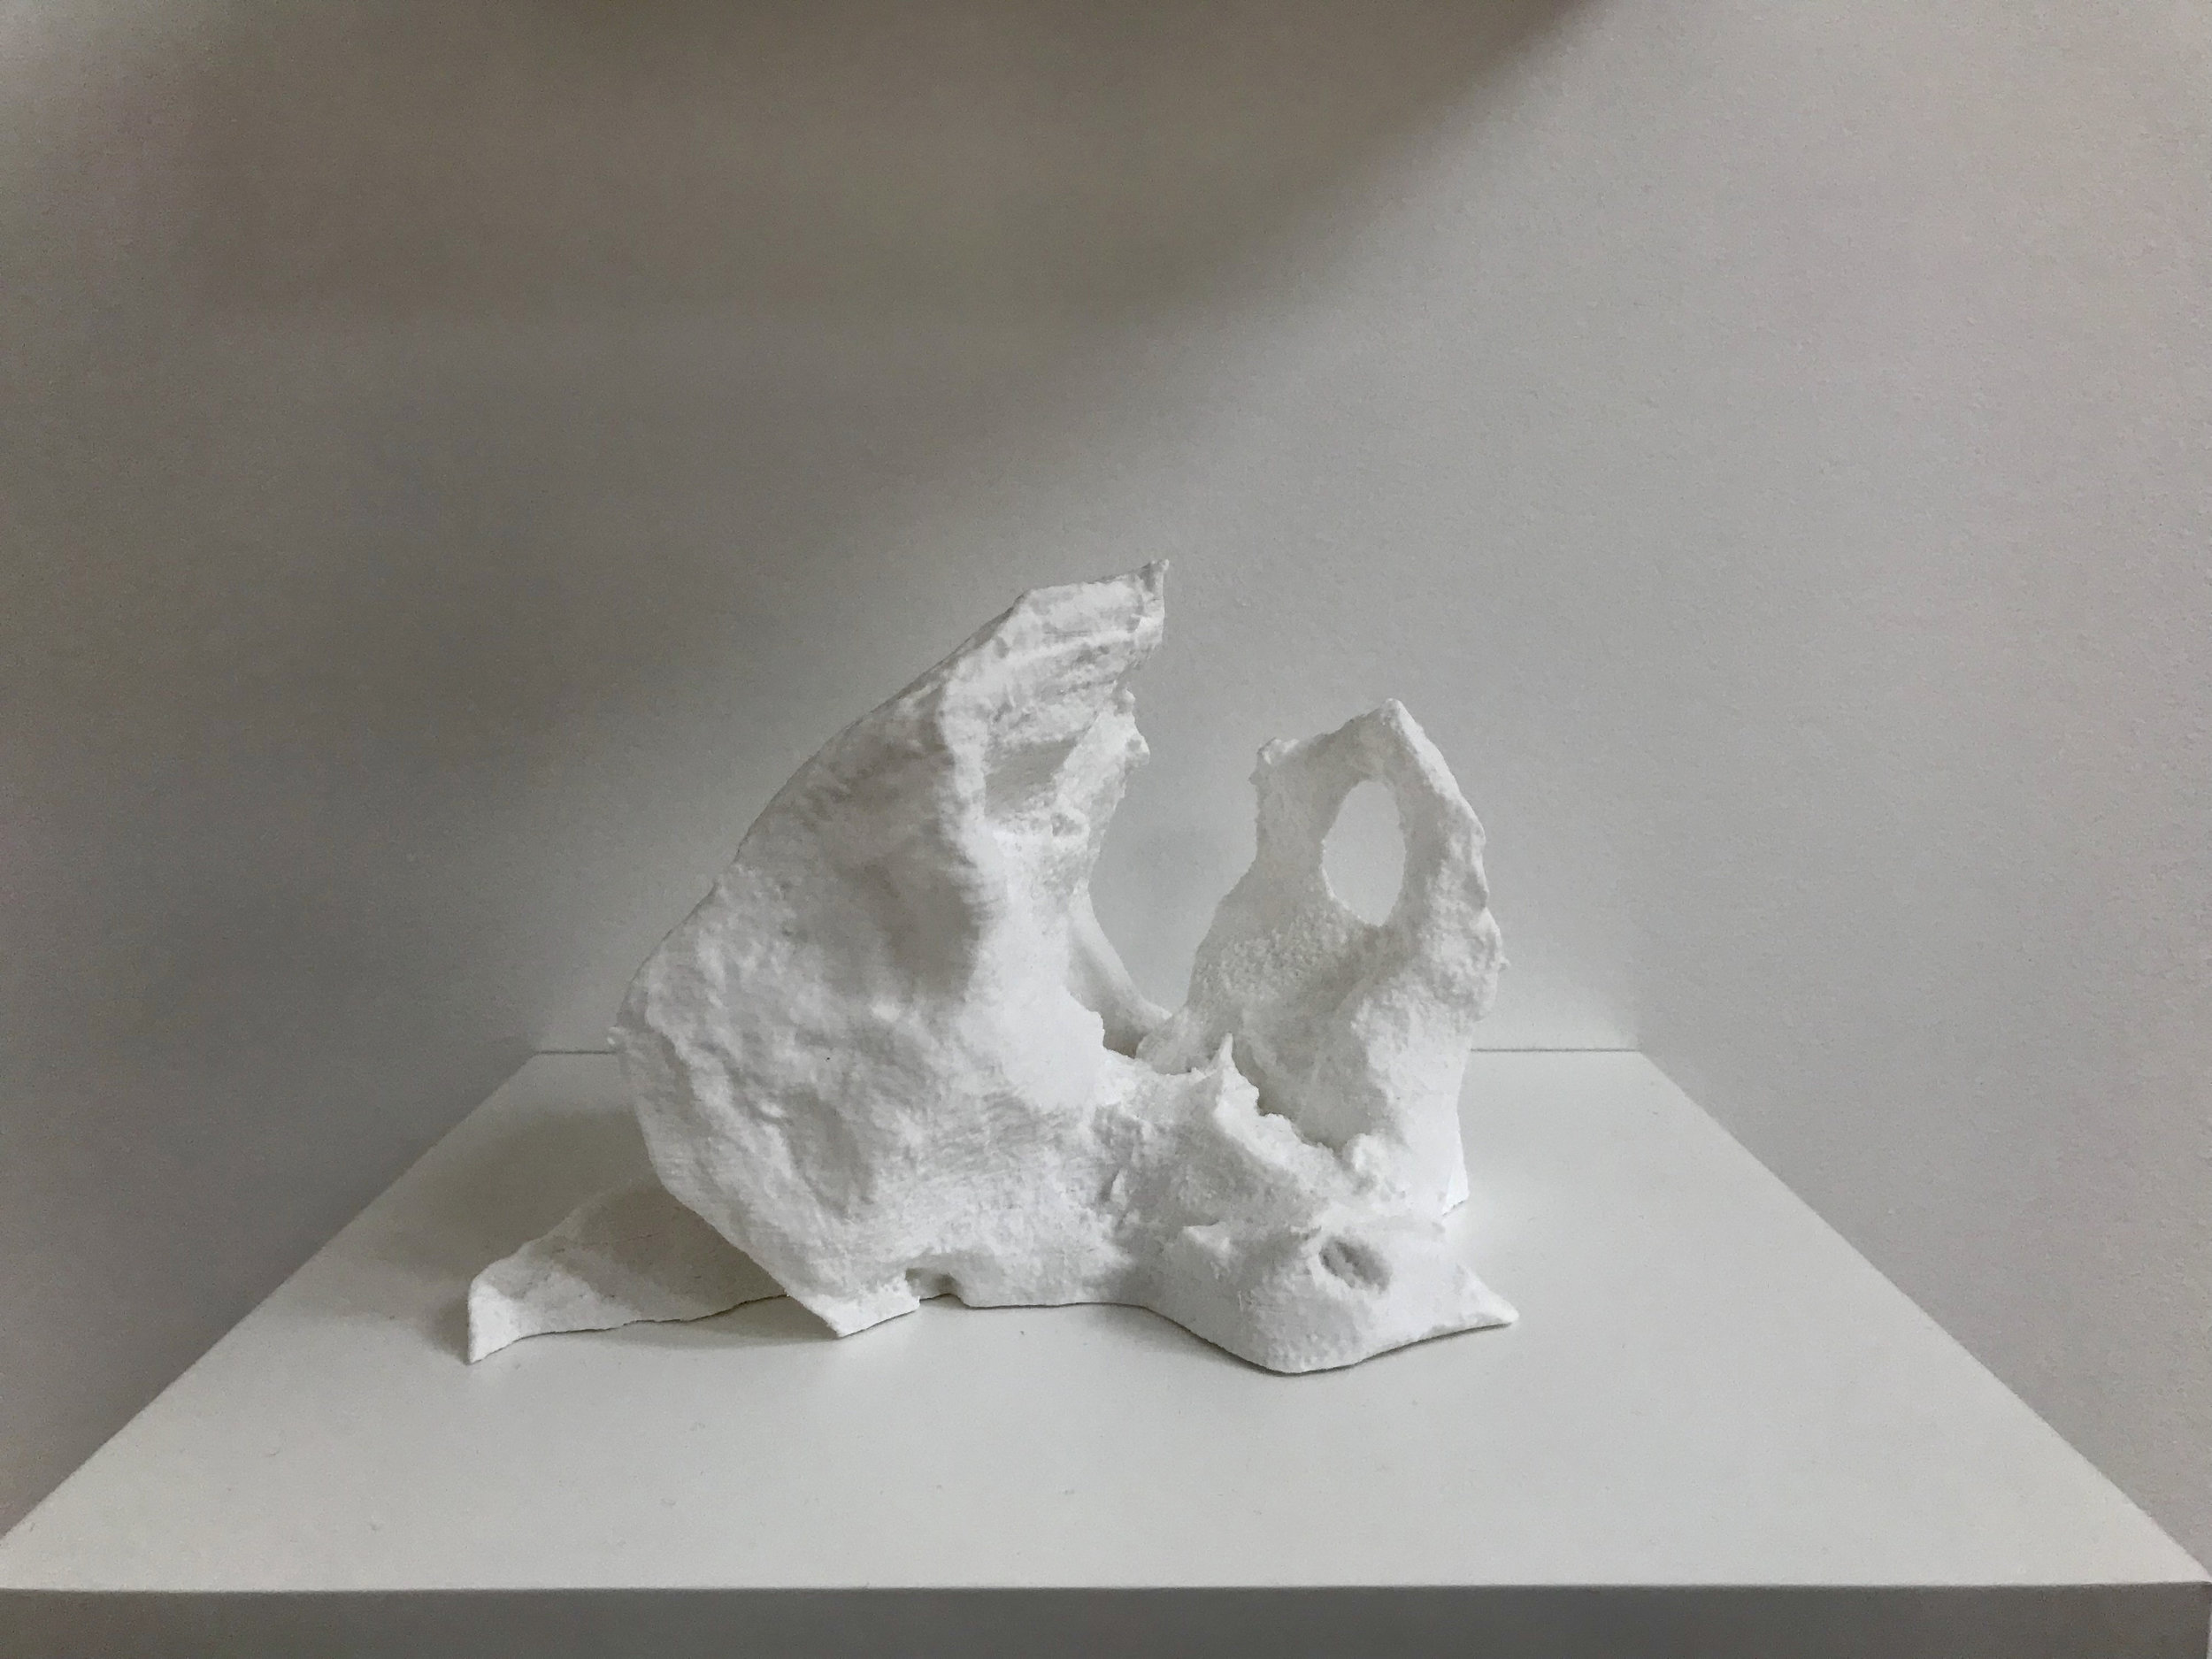 Joseph Smolinski,  Lost Monuments , 2018. 3D scanned melted snow piles, 3D printed in plastic.